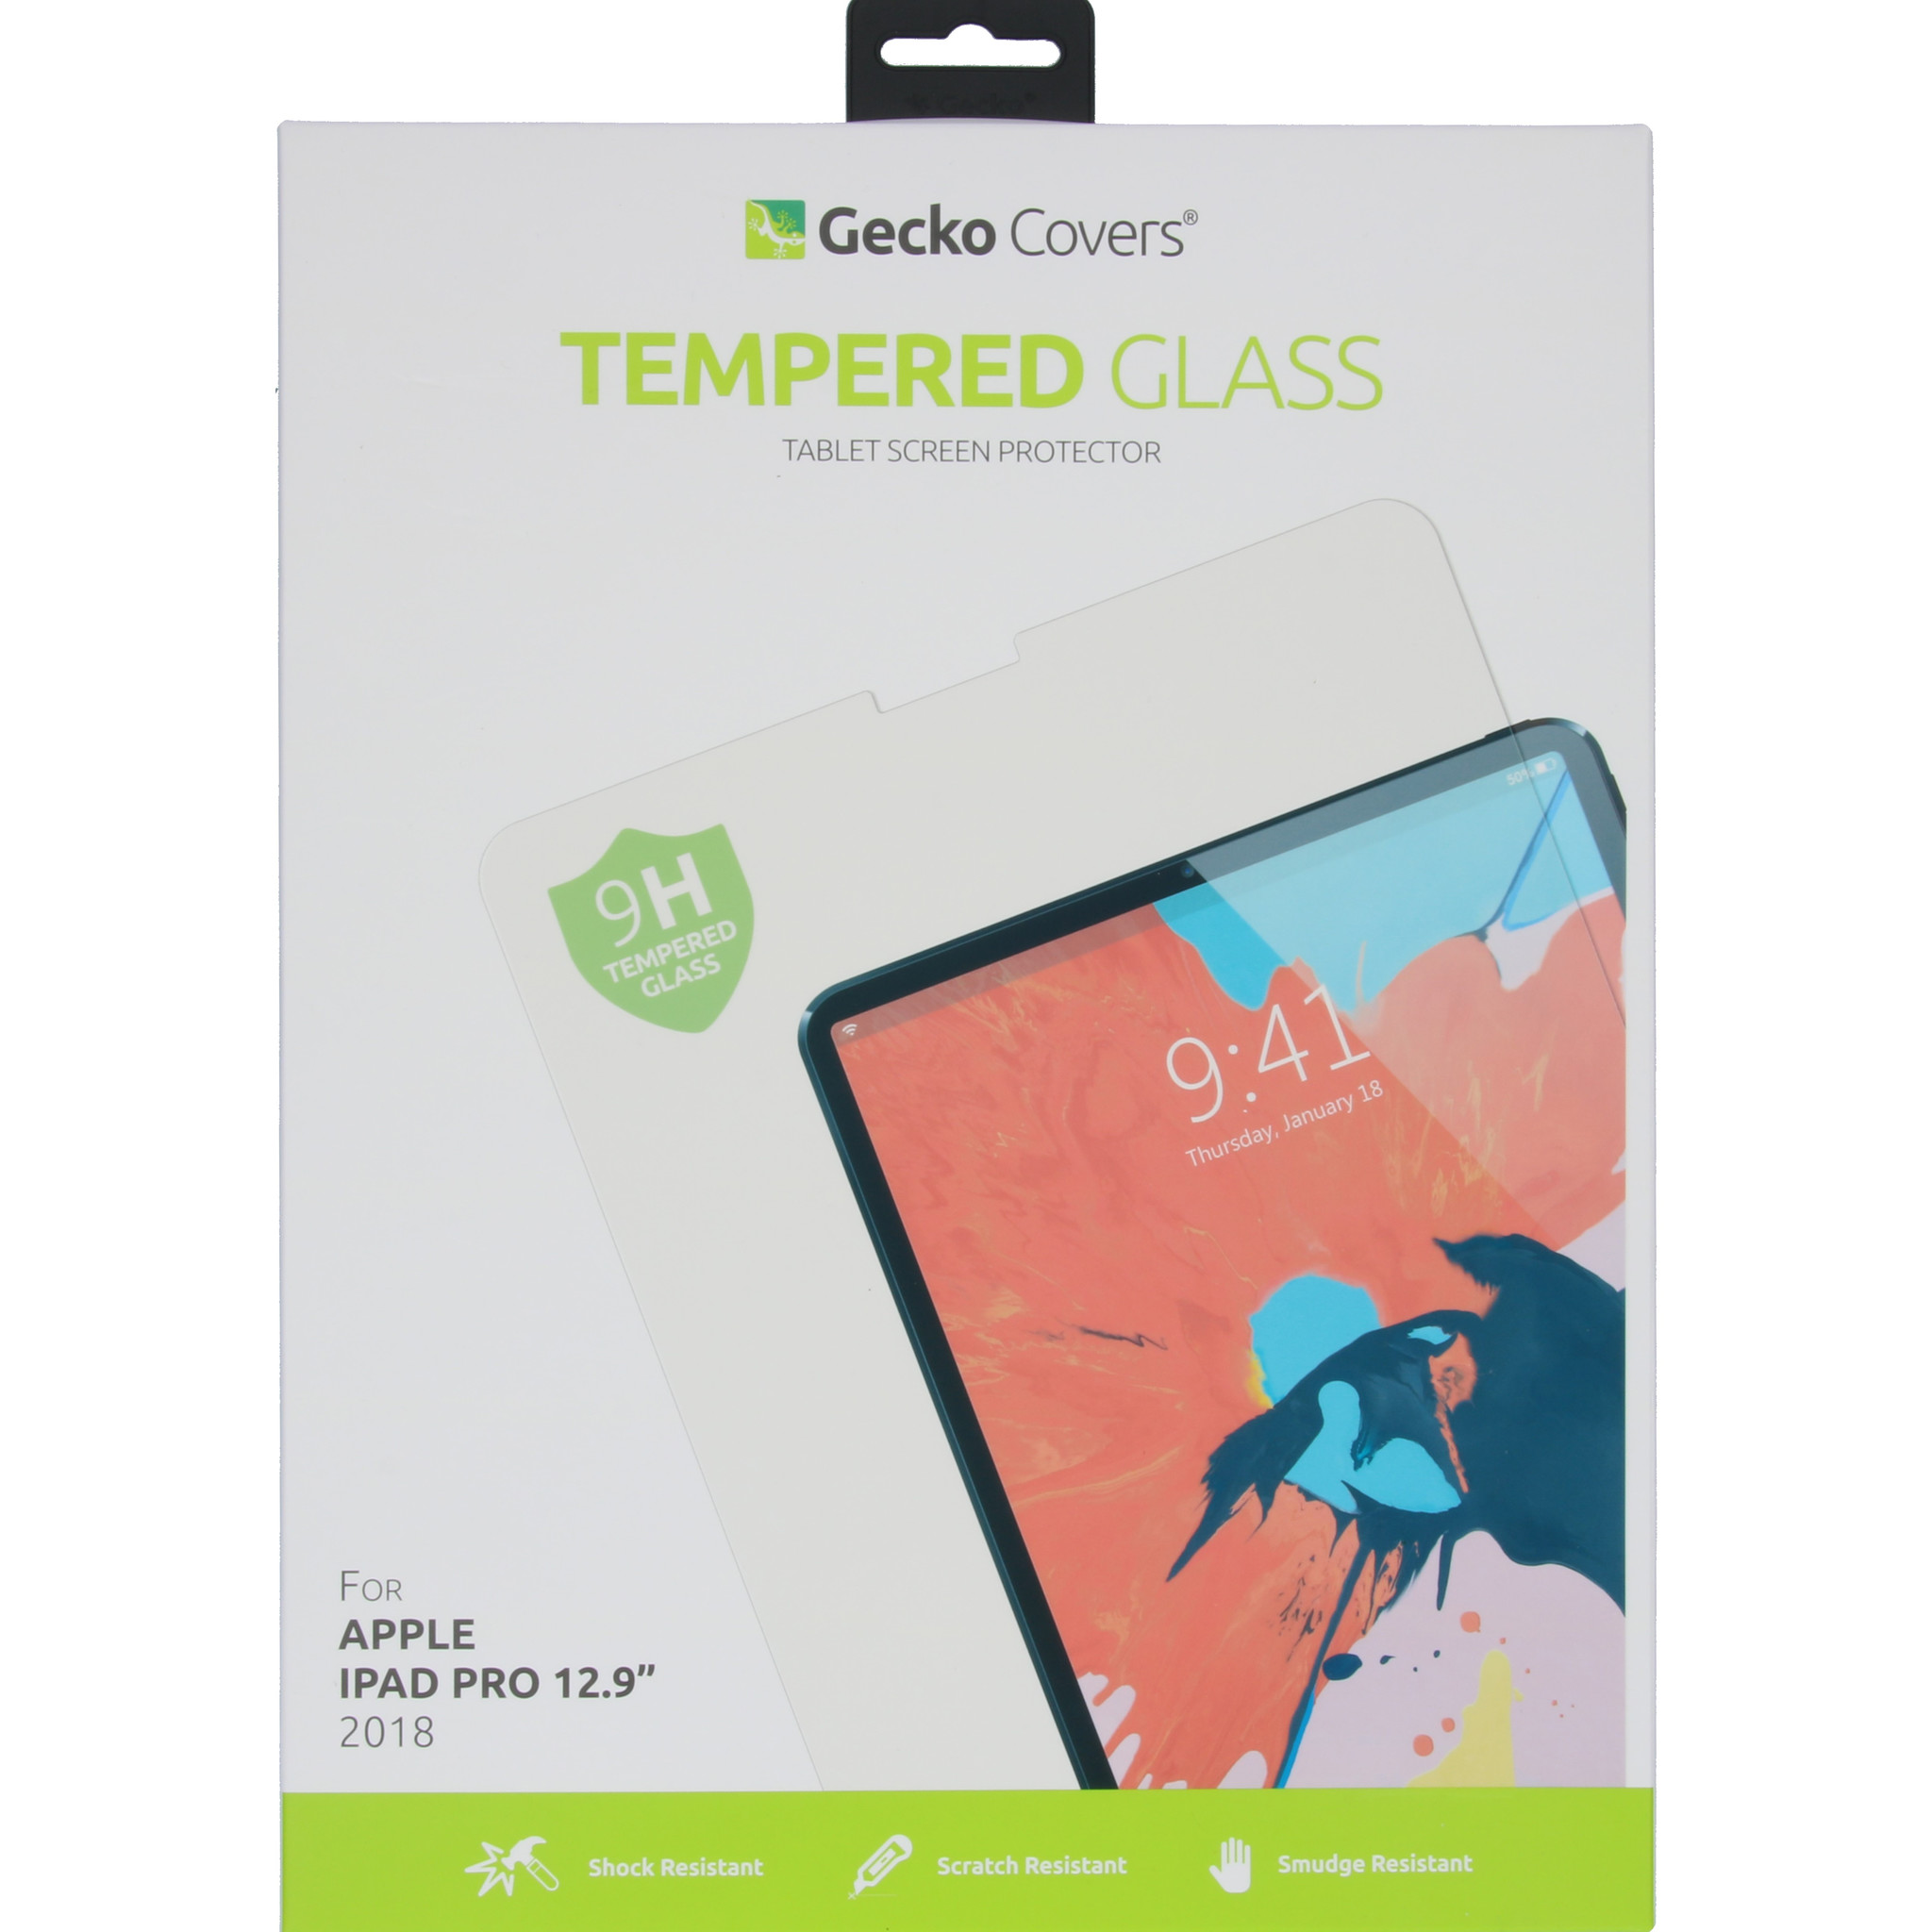 Gecko Covers Tempered Glass Screenprotector voor de iPad Pro 12.9 (2018)